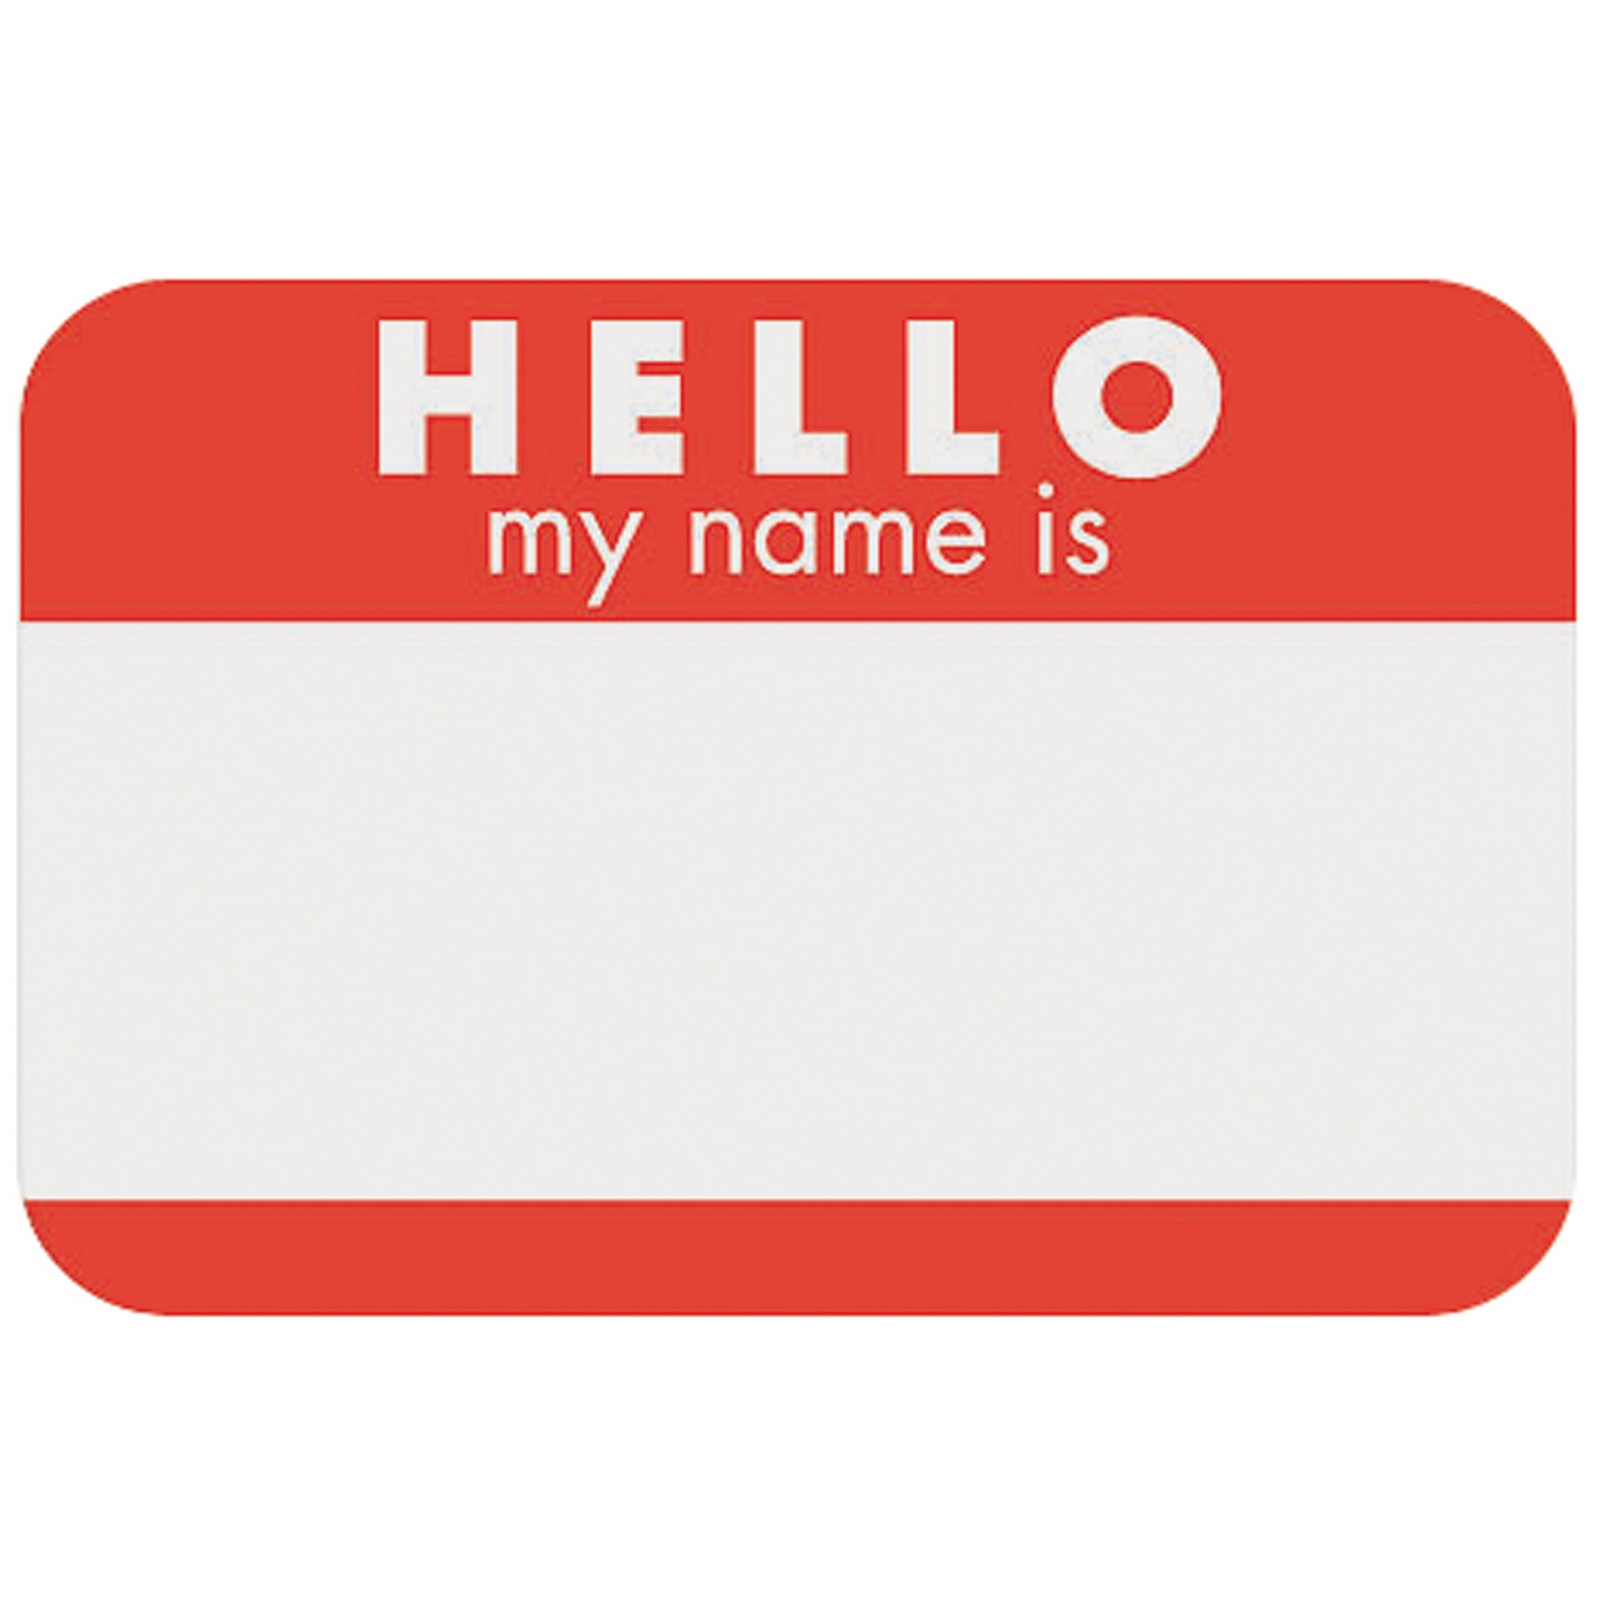 Kmart Photo Prints Self Adhesive Name Tags 100 Pkg Hello Red